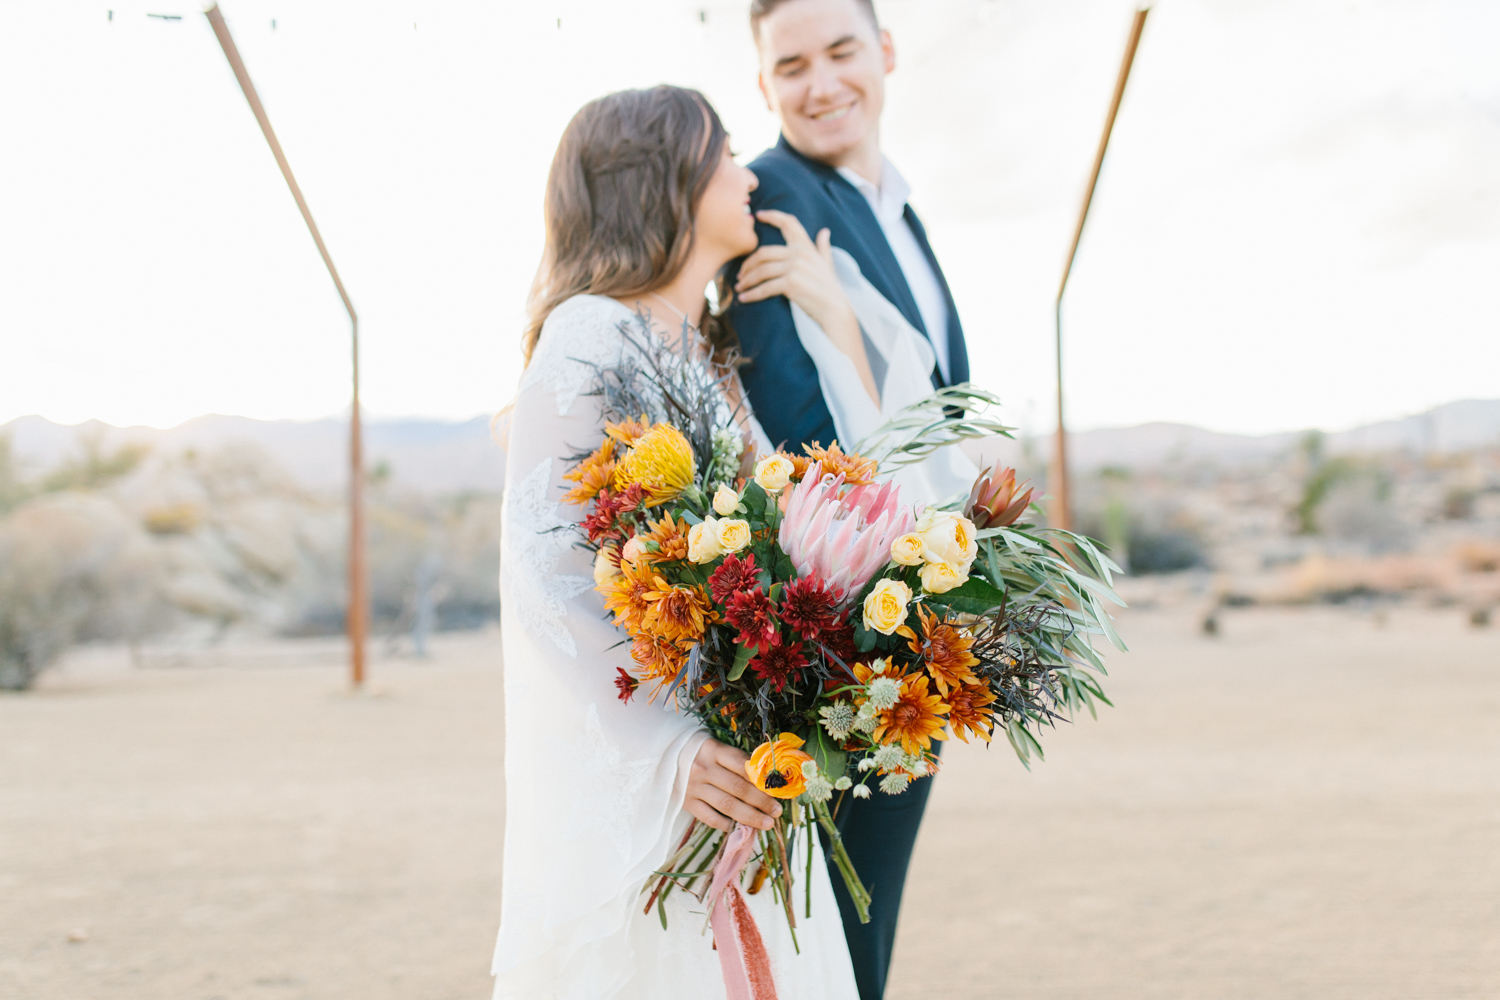 The Ruin Venue California   California Bride Inspiration   Fall Styled Shoot in the Desert   Epic Styled Shoot   Southern California Wedding Photographer   The Dress Theory   Fall Desert Wedding